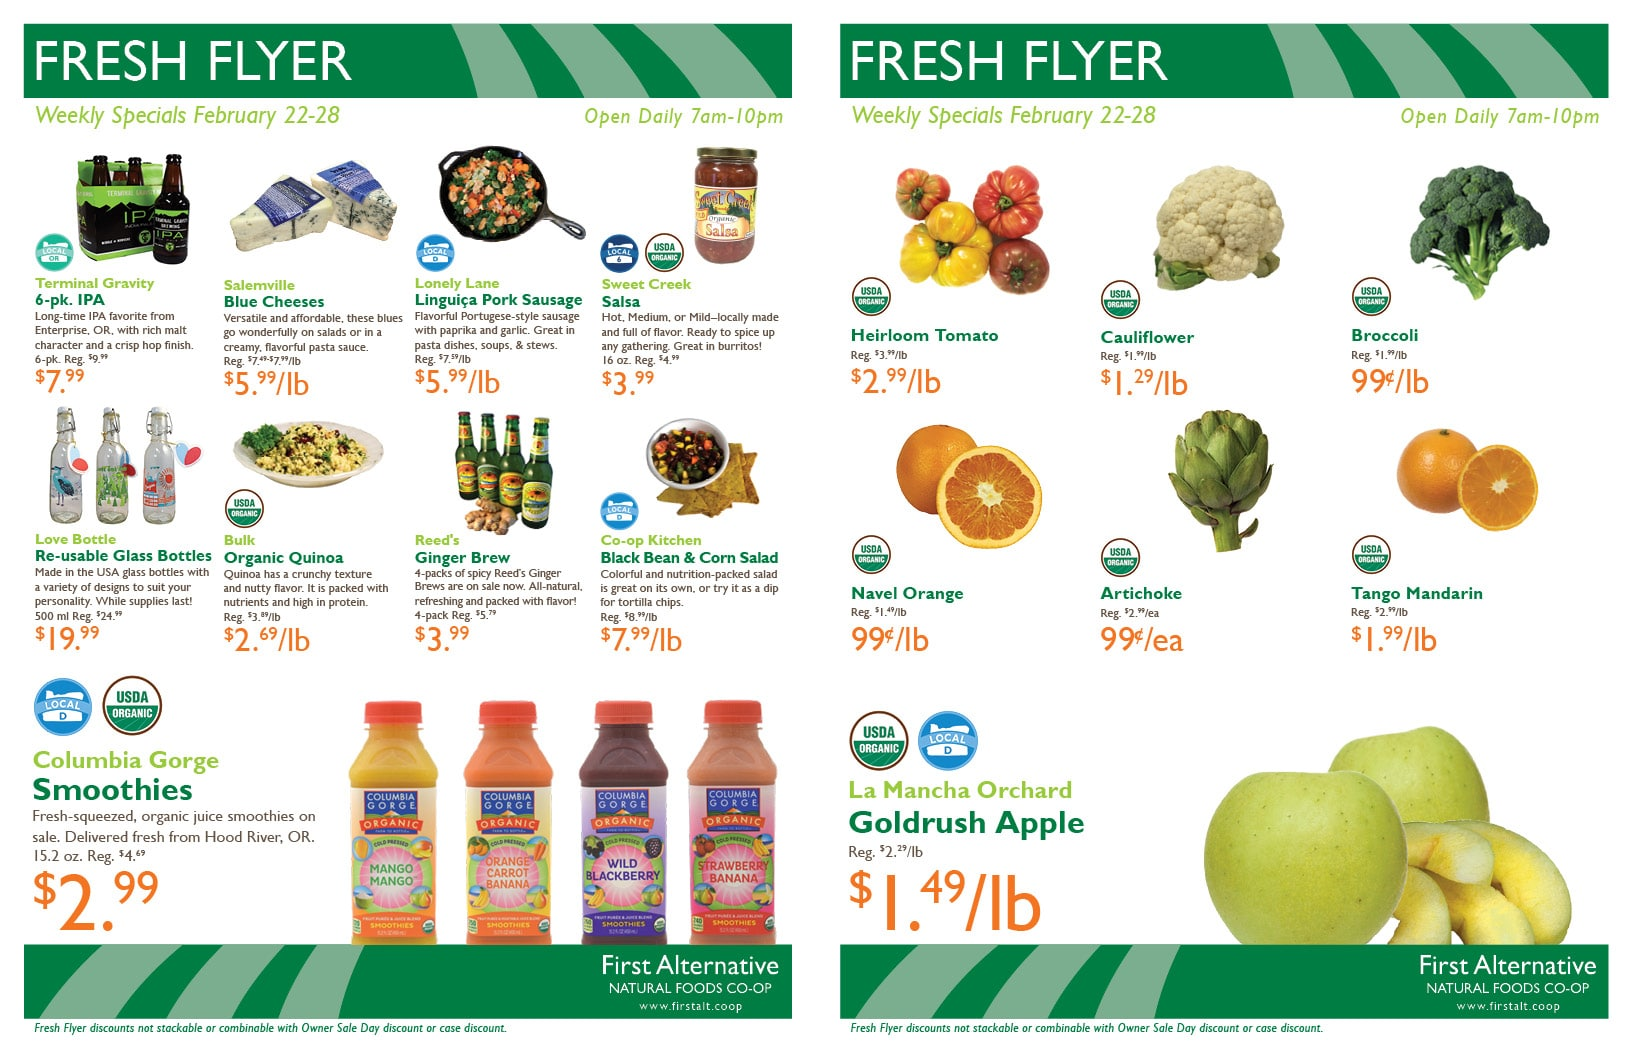 First Alternative Co-op Fresh Flyer Feb. 22-28